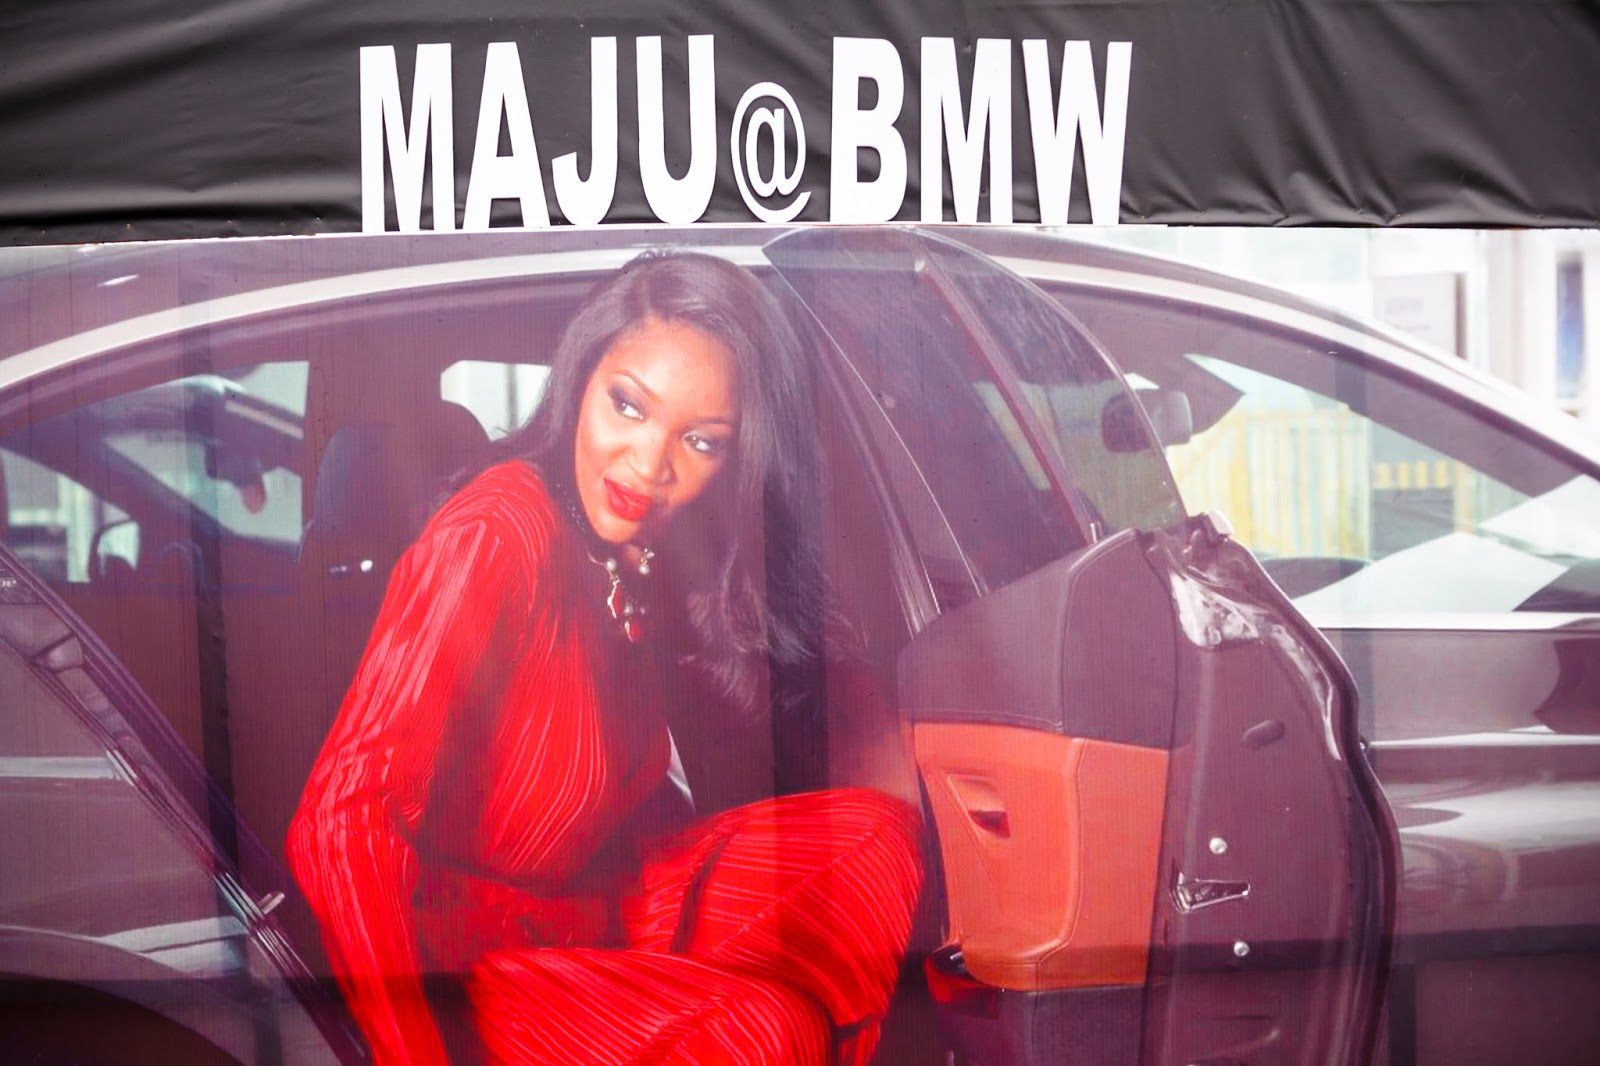 maju+bmw banner at eko atlantic shopping party lagos nigeria